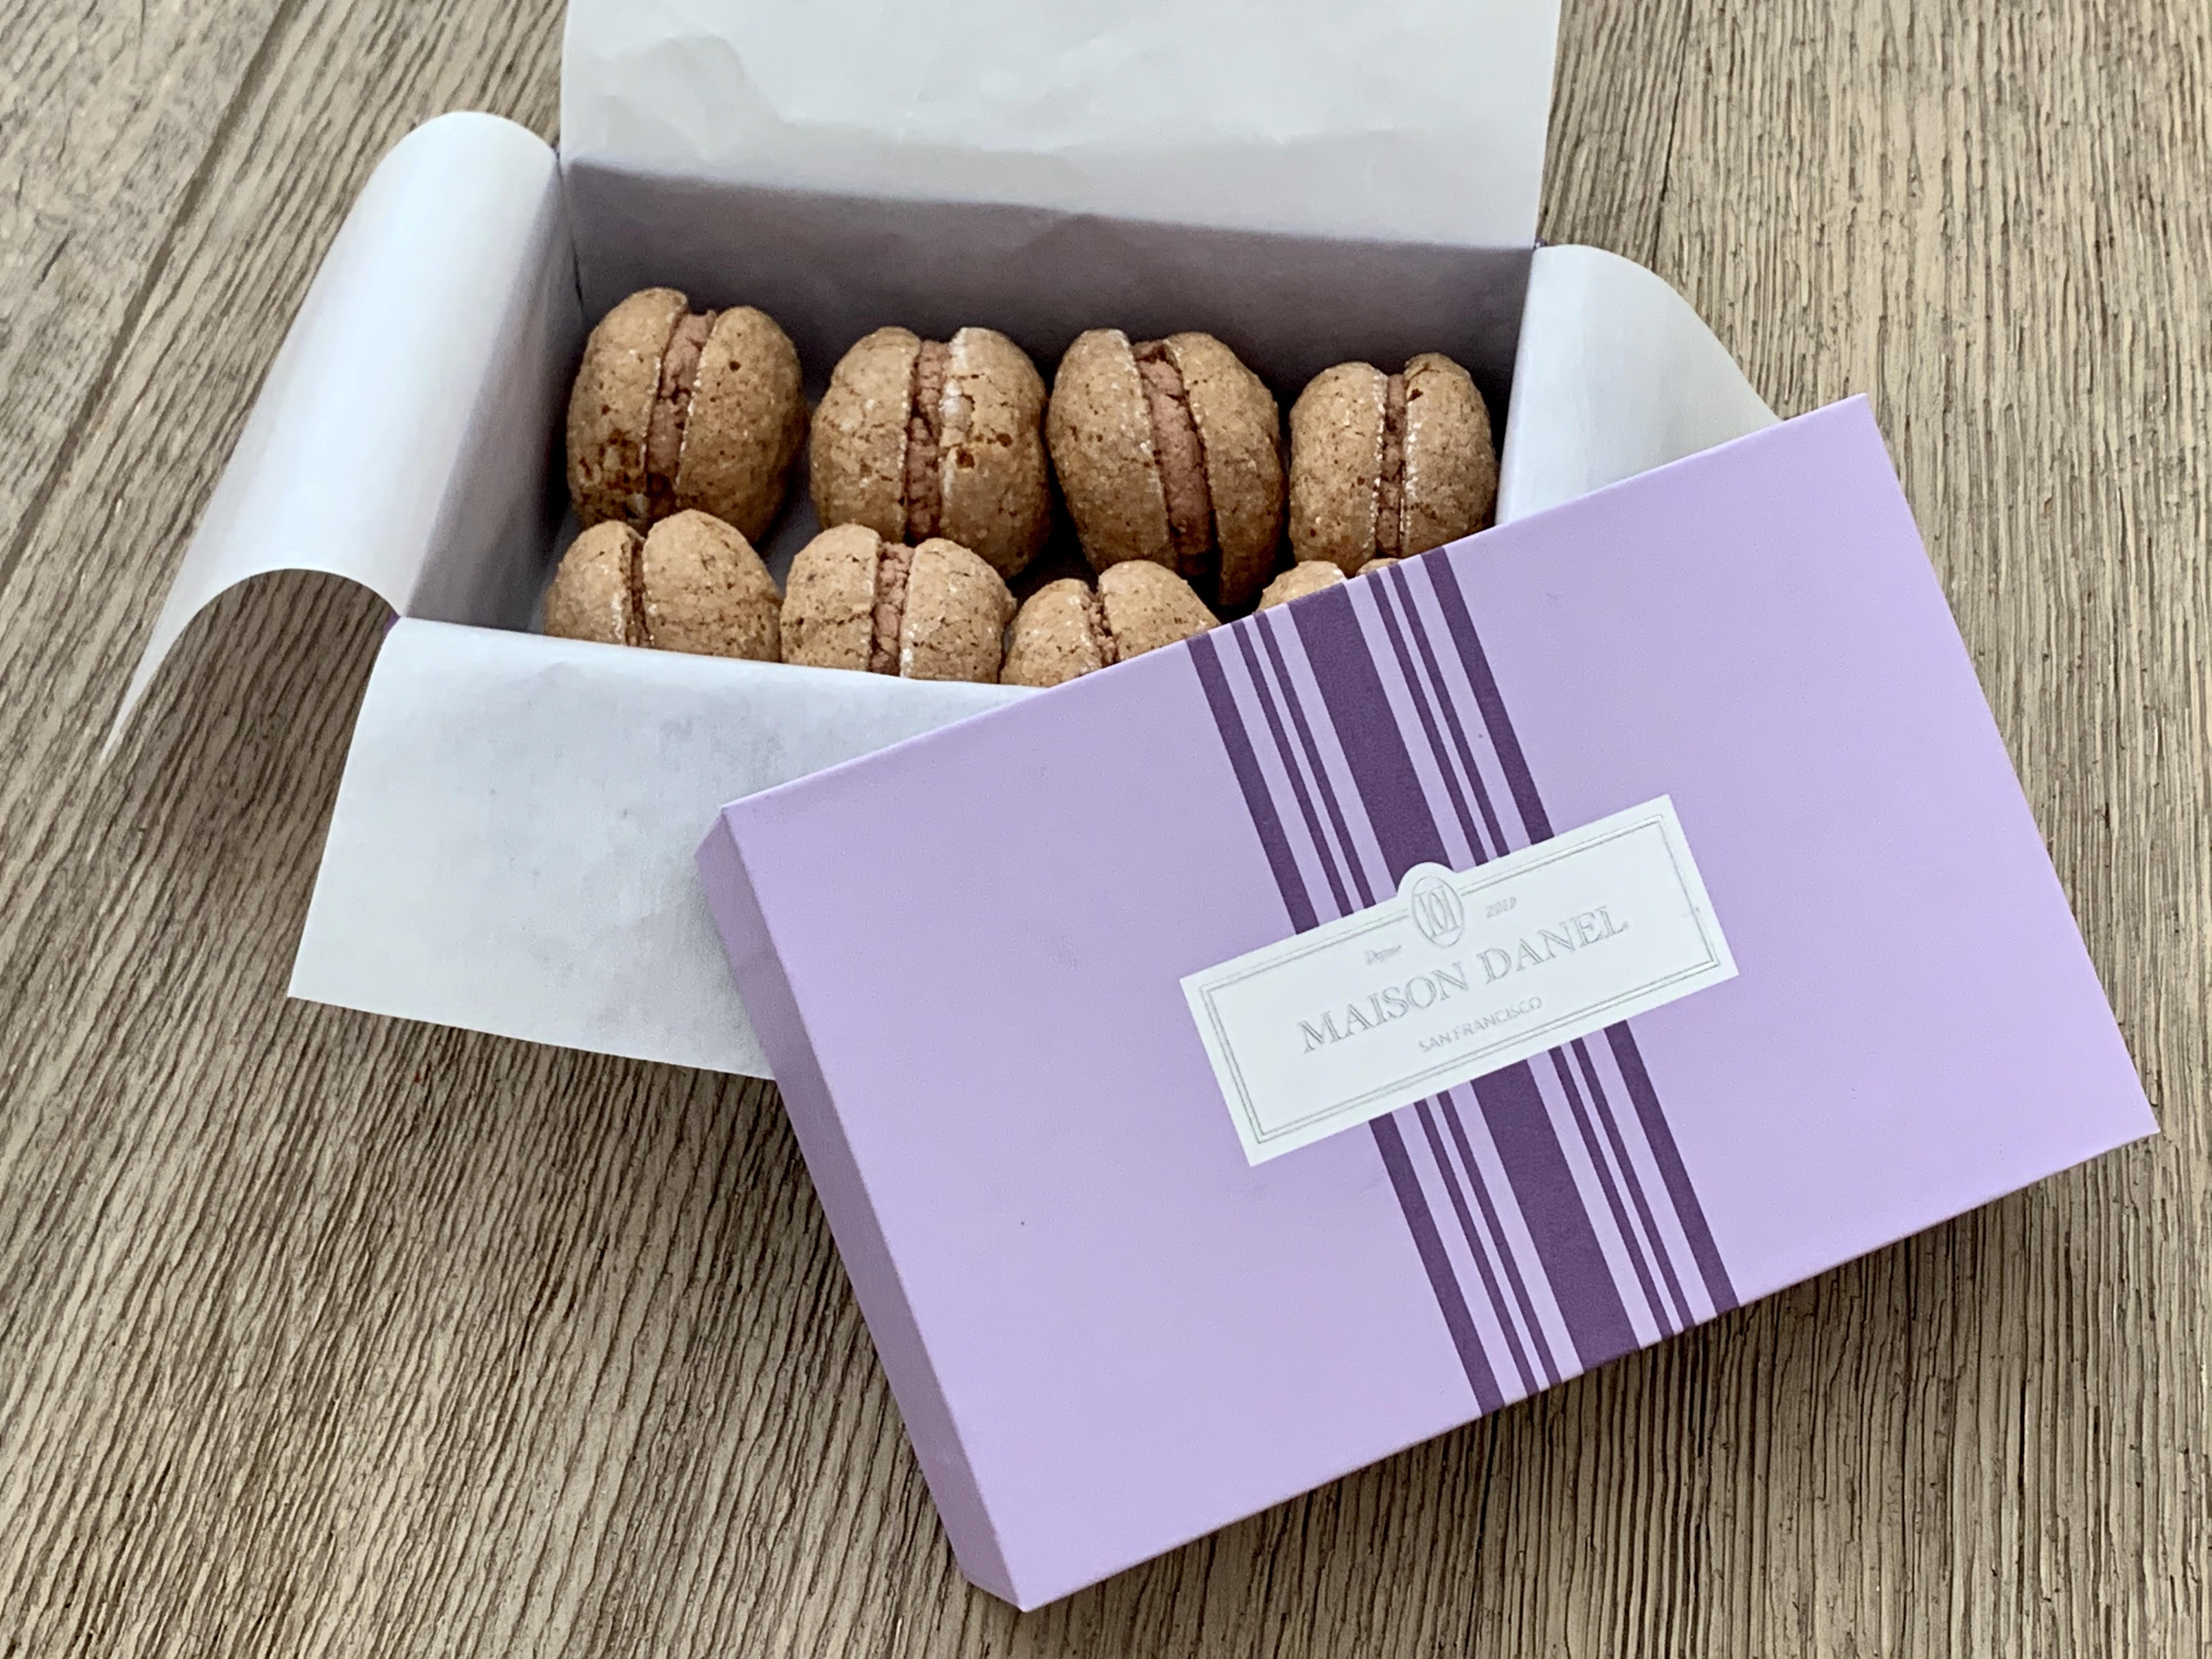 Macarons from Maison Danel